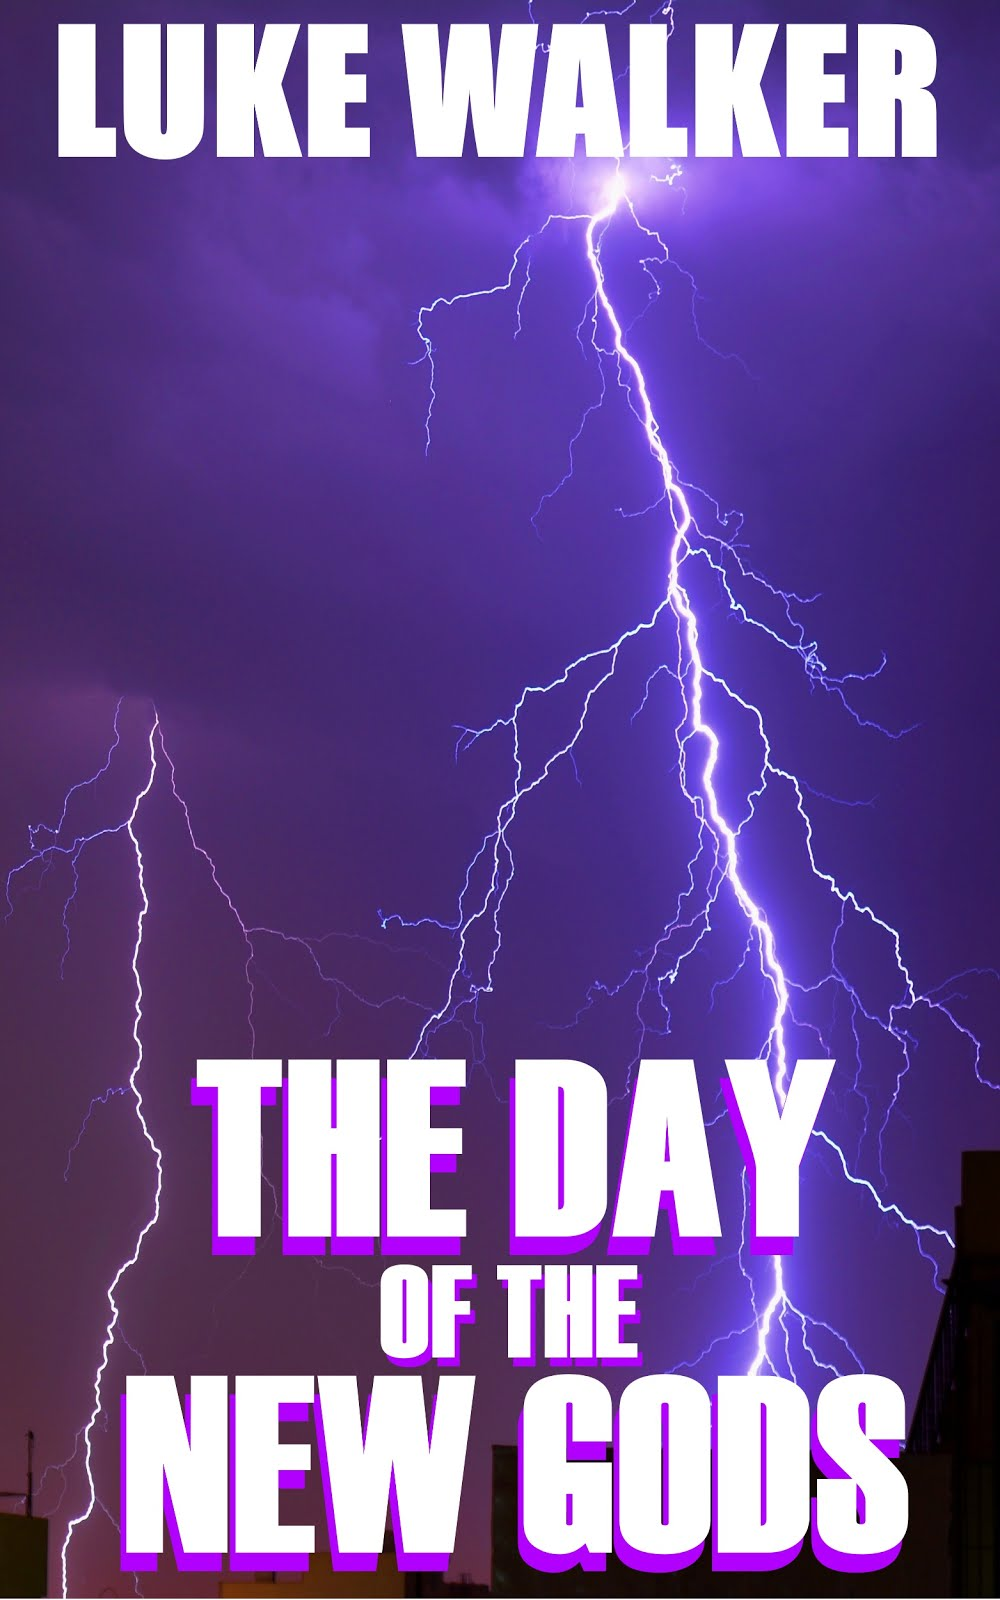 THE DAY OF THE NEW GODS